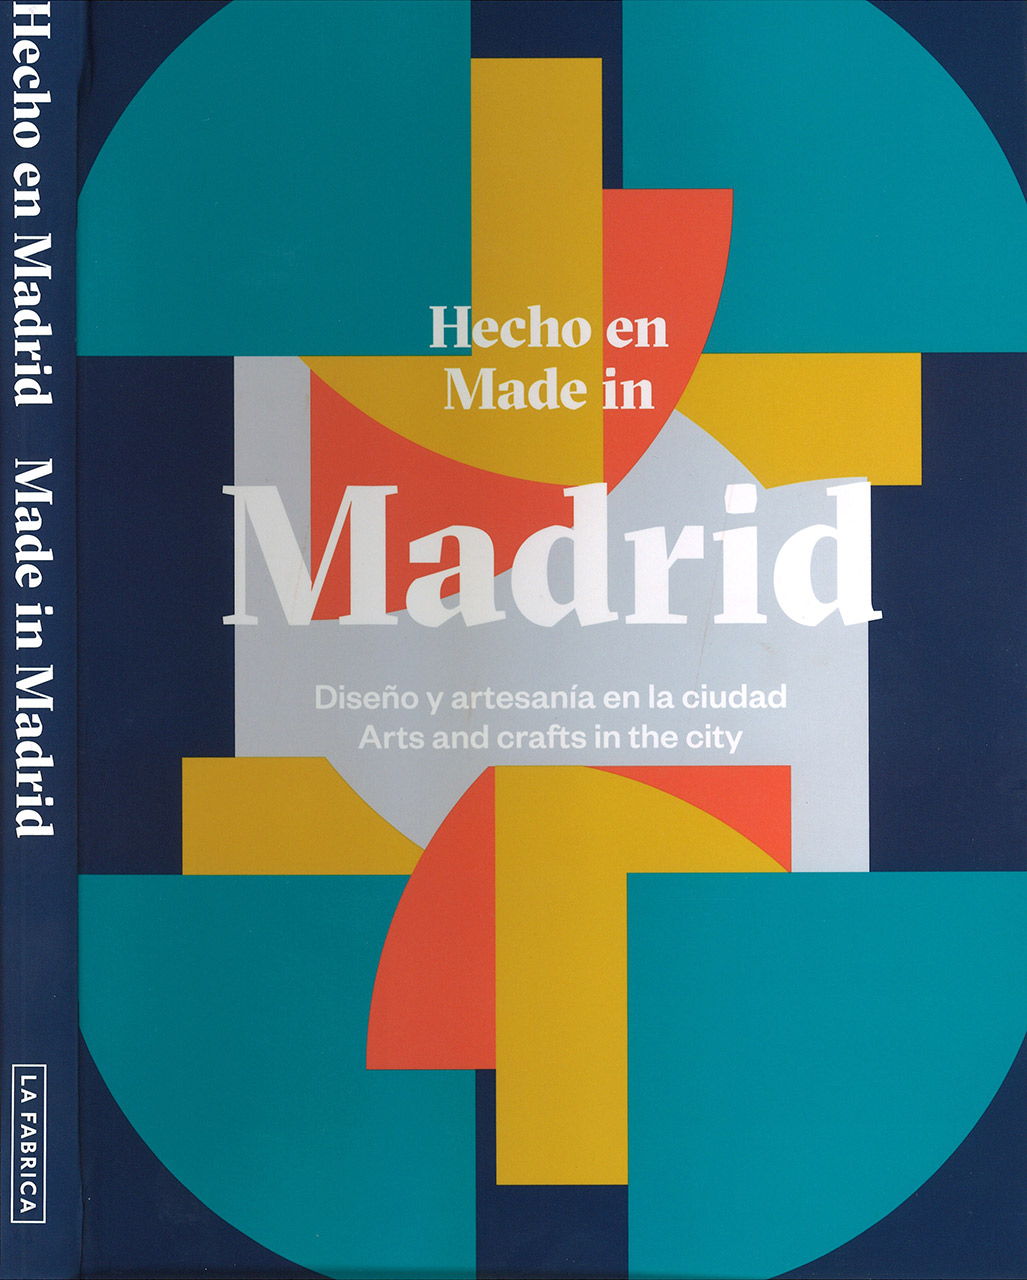 Made in Madrid